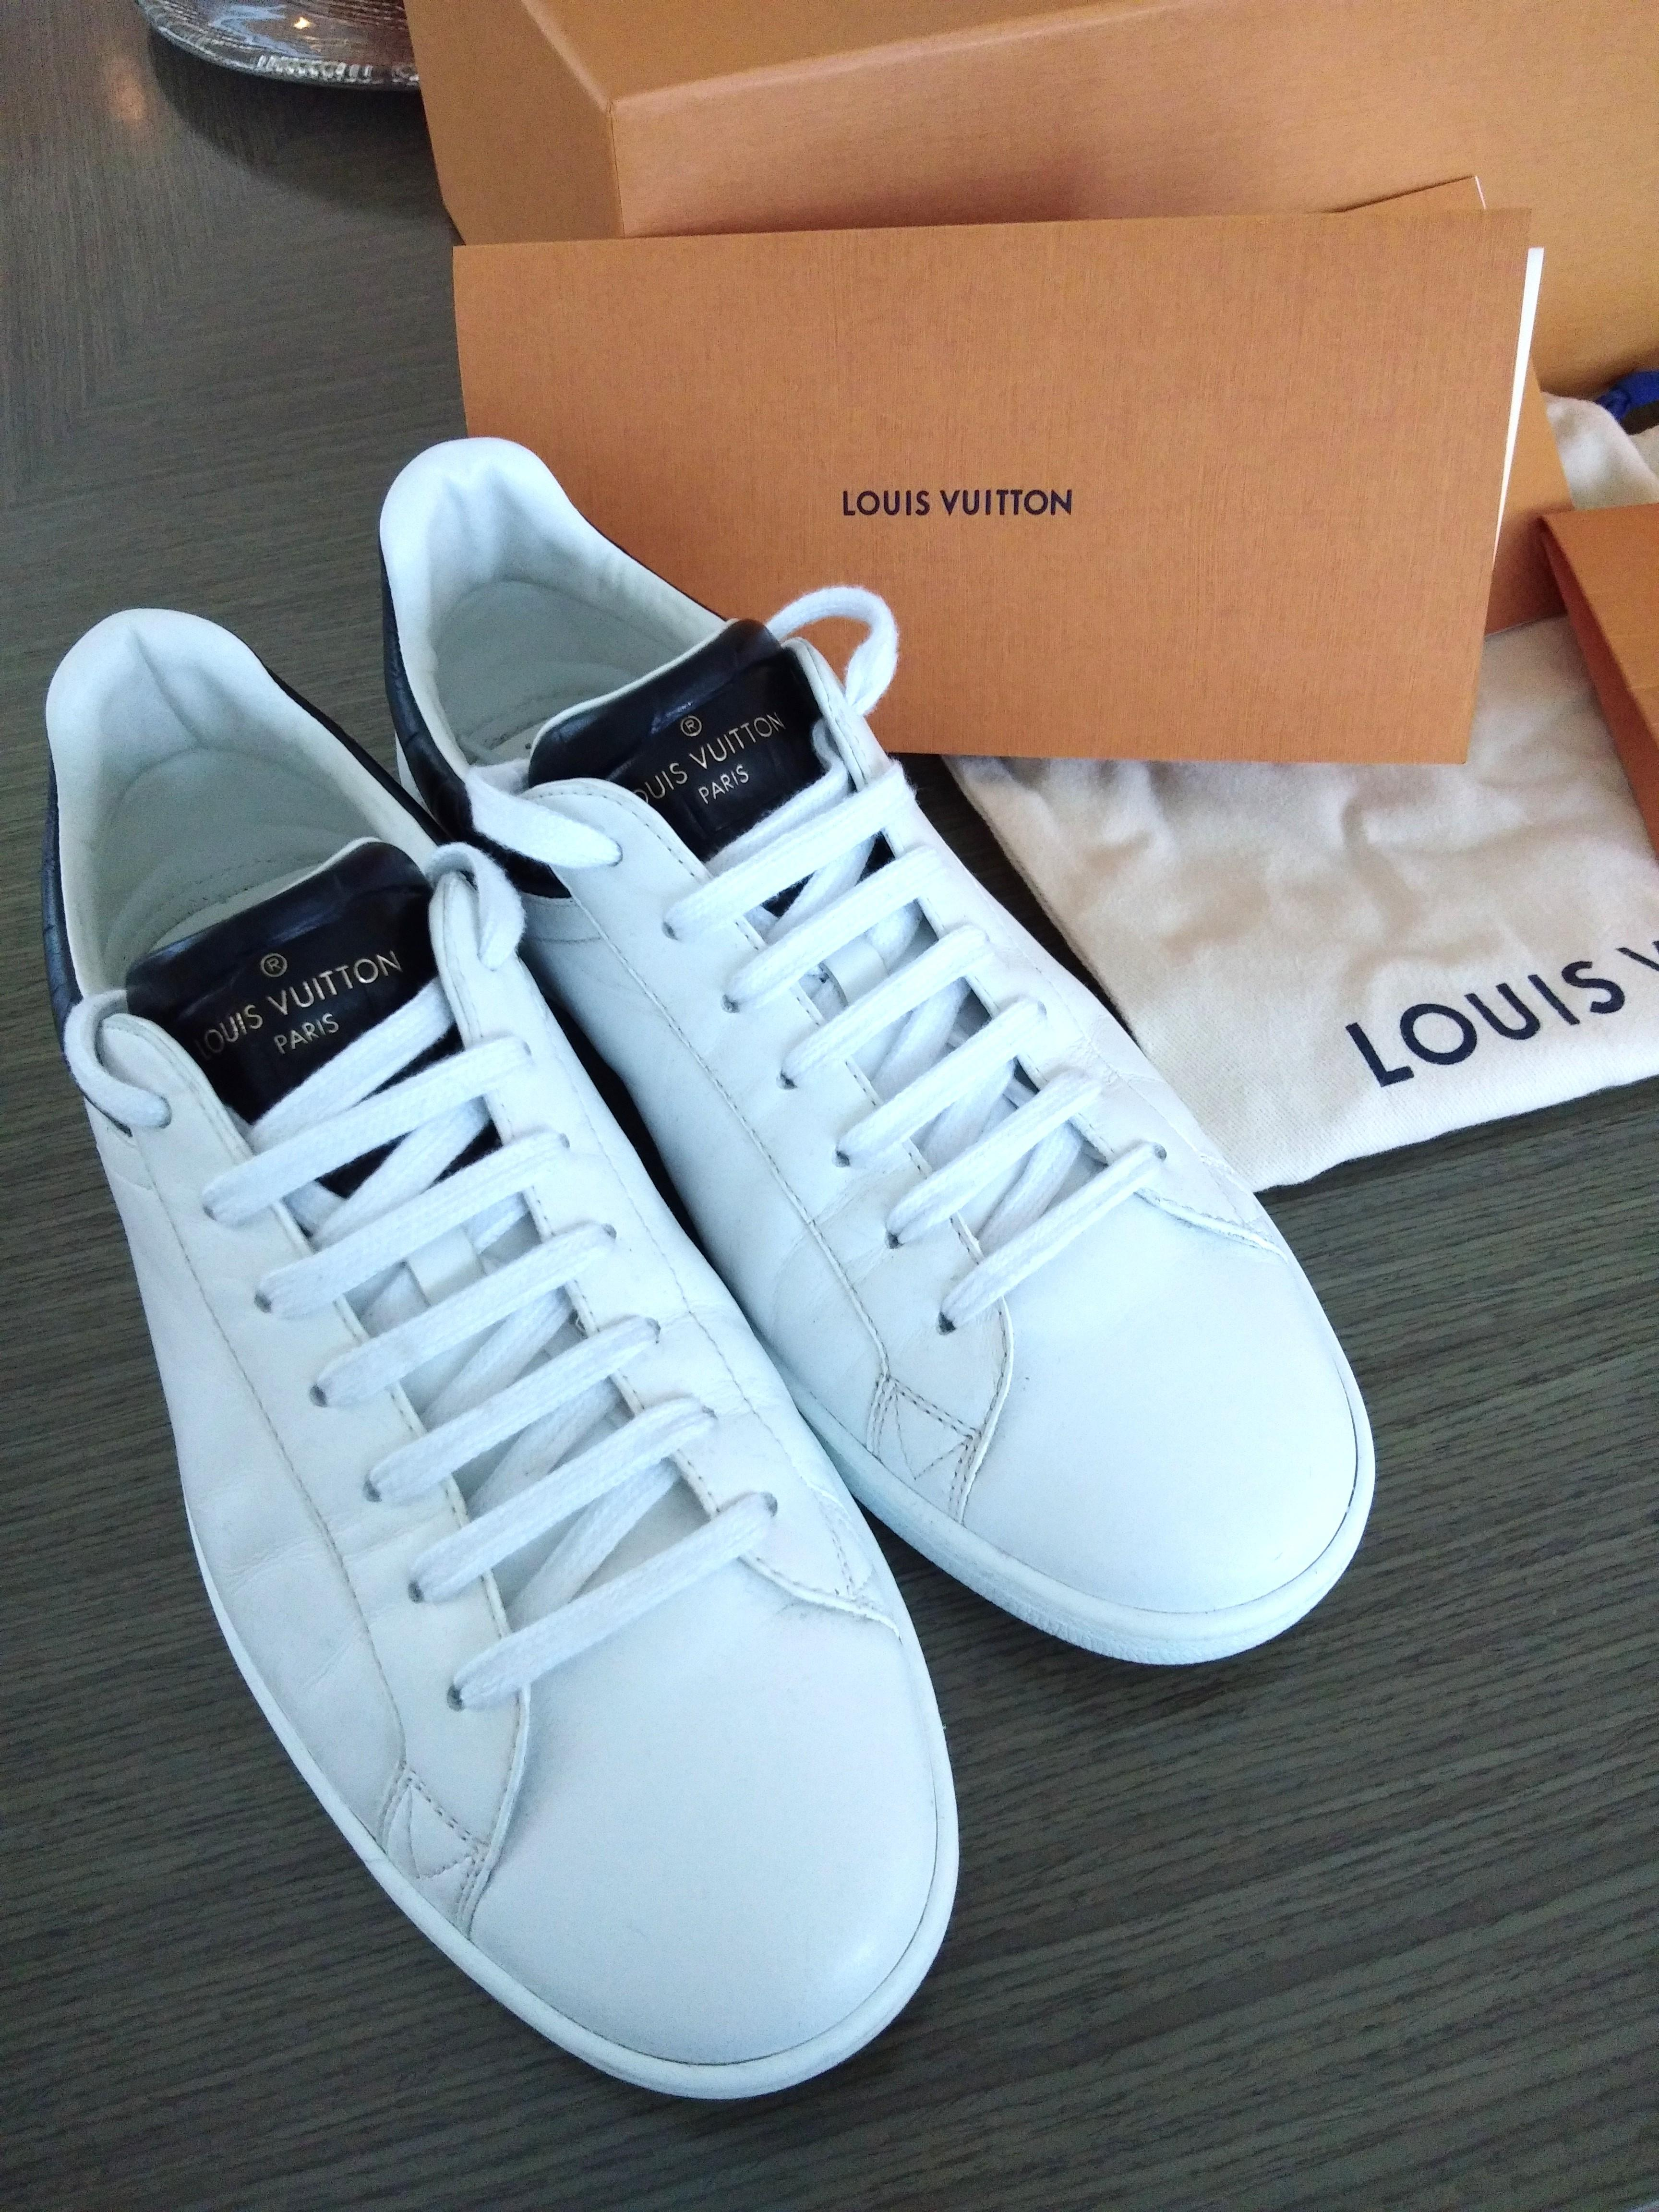 1f60a9cc61a Authentic LOUIS VUITTON LV Luxembourg Sneaker for Men on Carousell